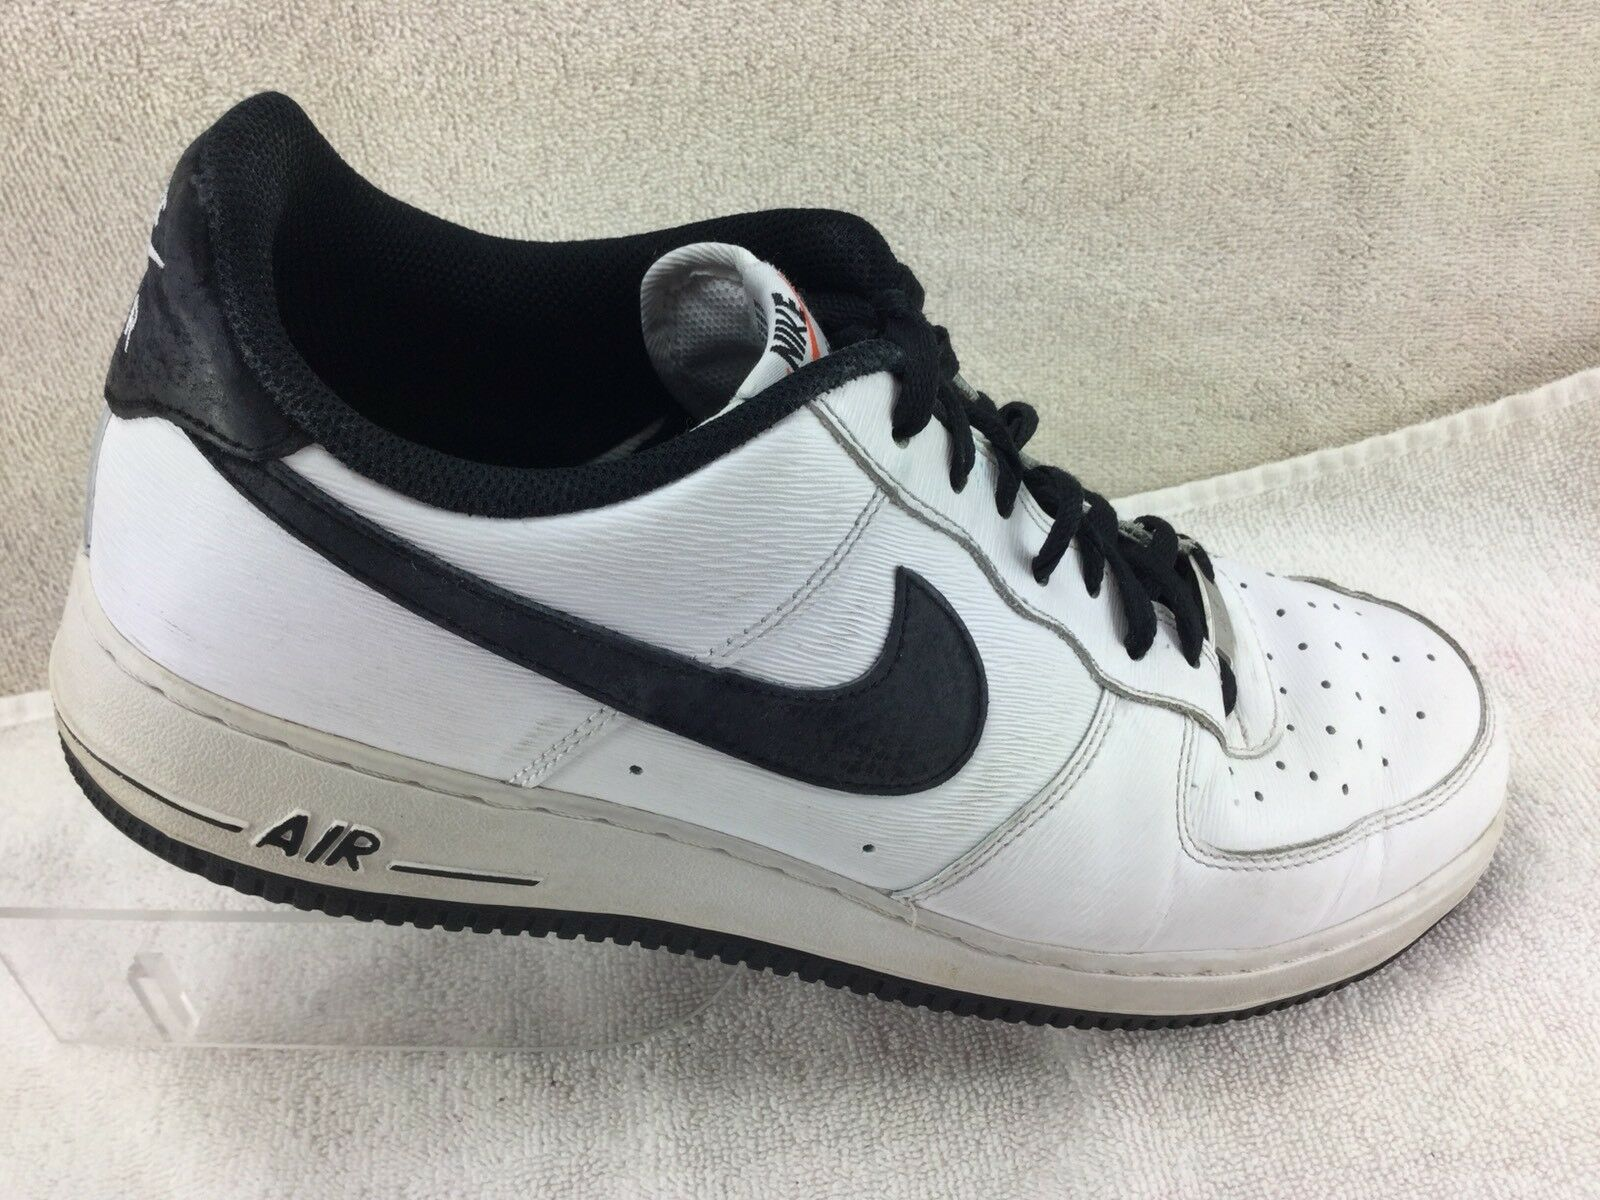 Nike Air Force 1 Men's Shoes White Leather Comfortable Cheap and beautiful fashion